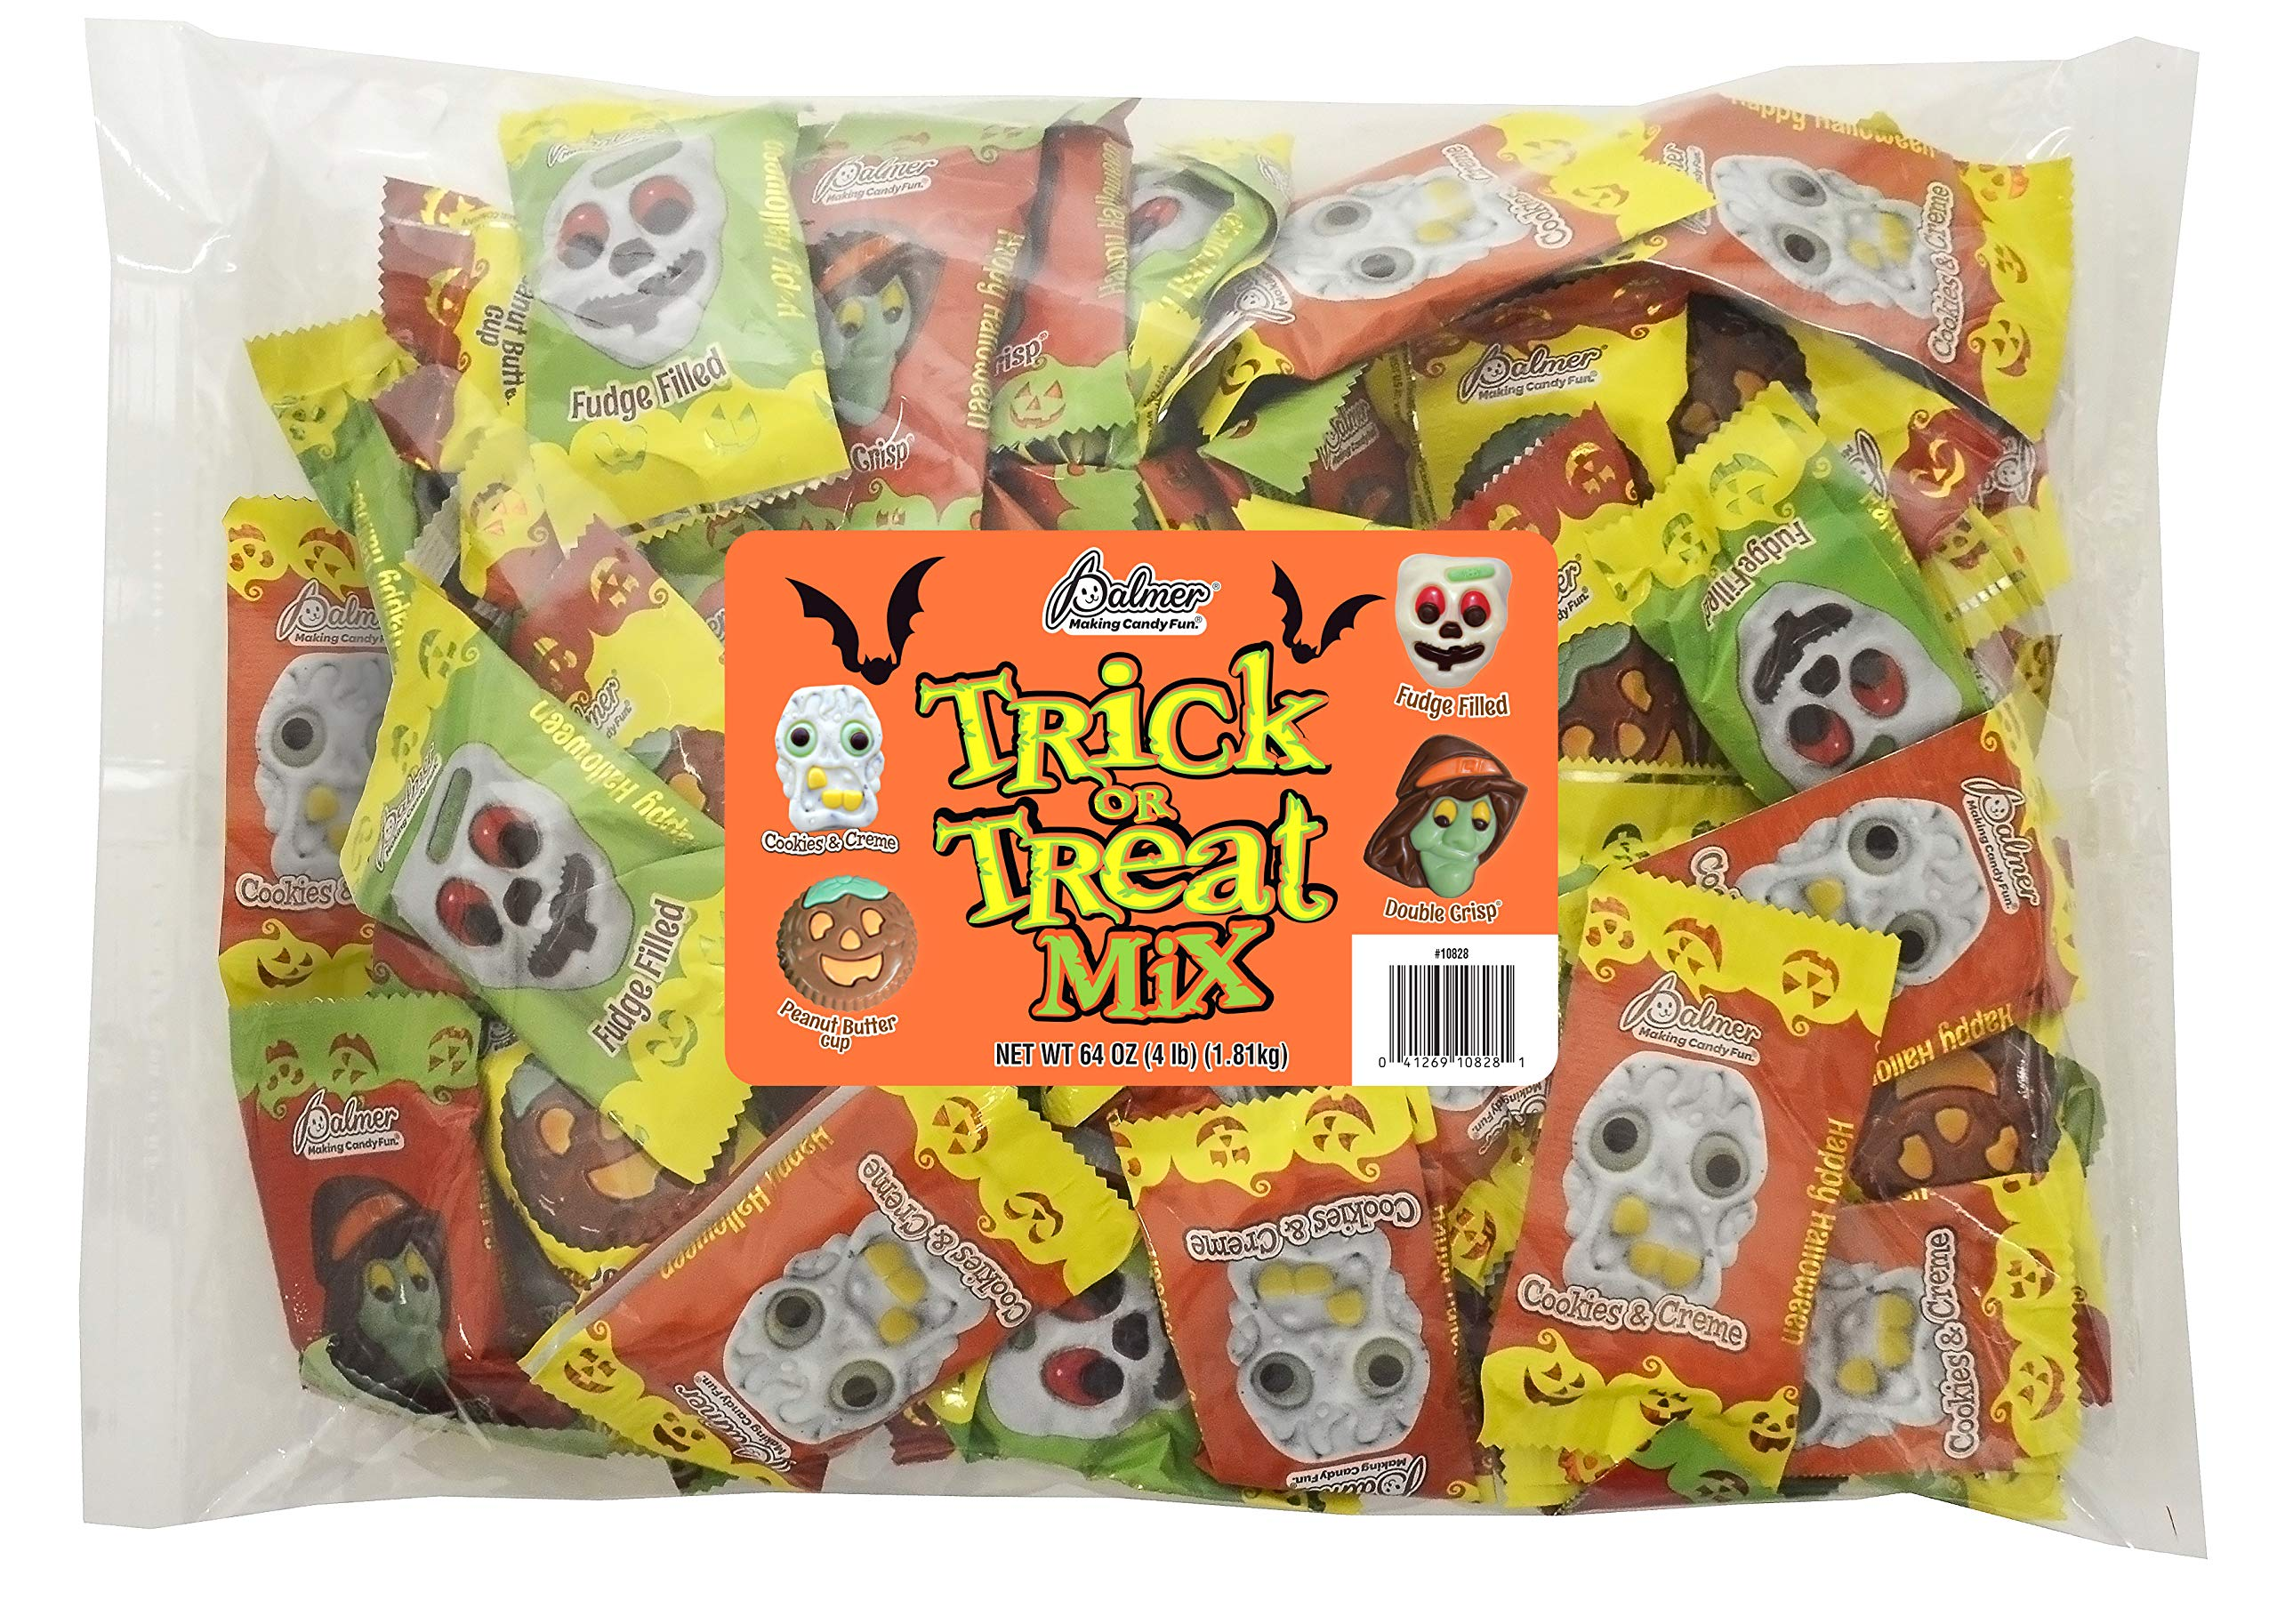 CDM product R.M. Palmer Trick or Treat Mix - Bulk Bag of Skeletons, Witches, Zombies, and Pumpkin Shaped Halloween Themed Treats, Candy, and Snacks (4 LB) big image